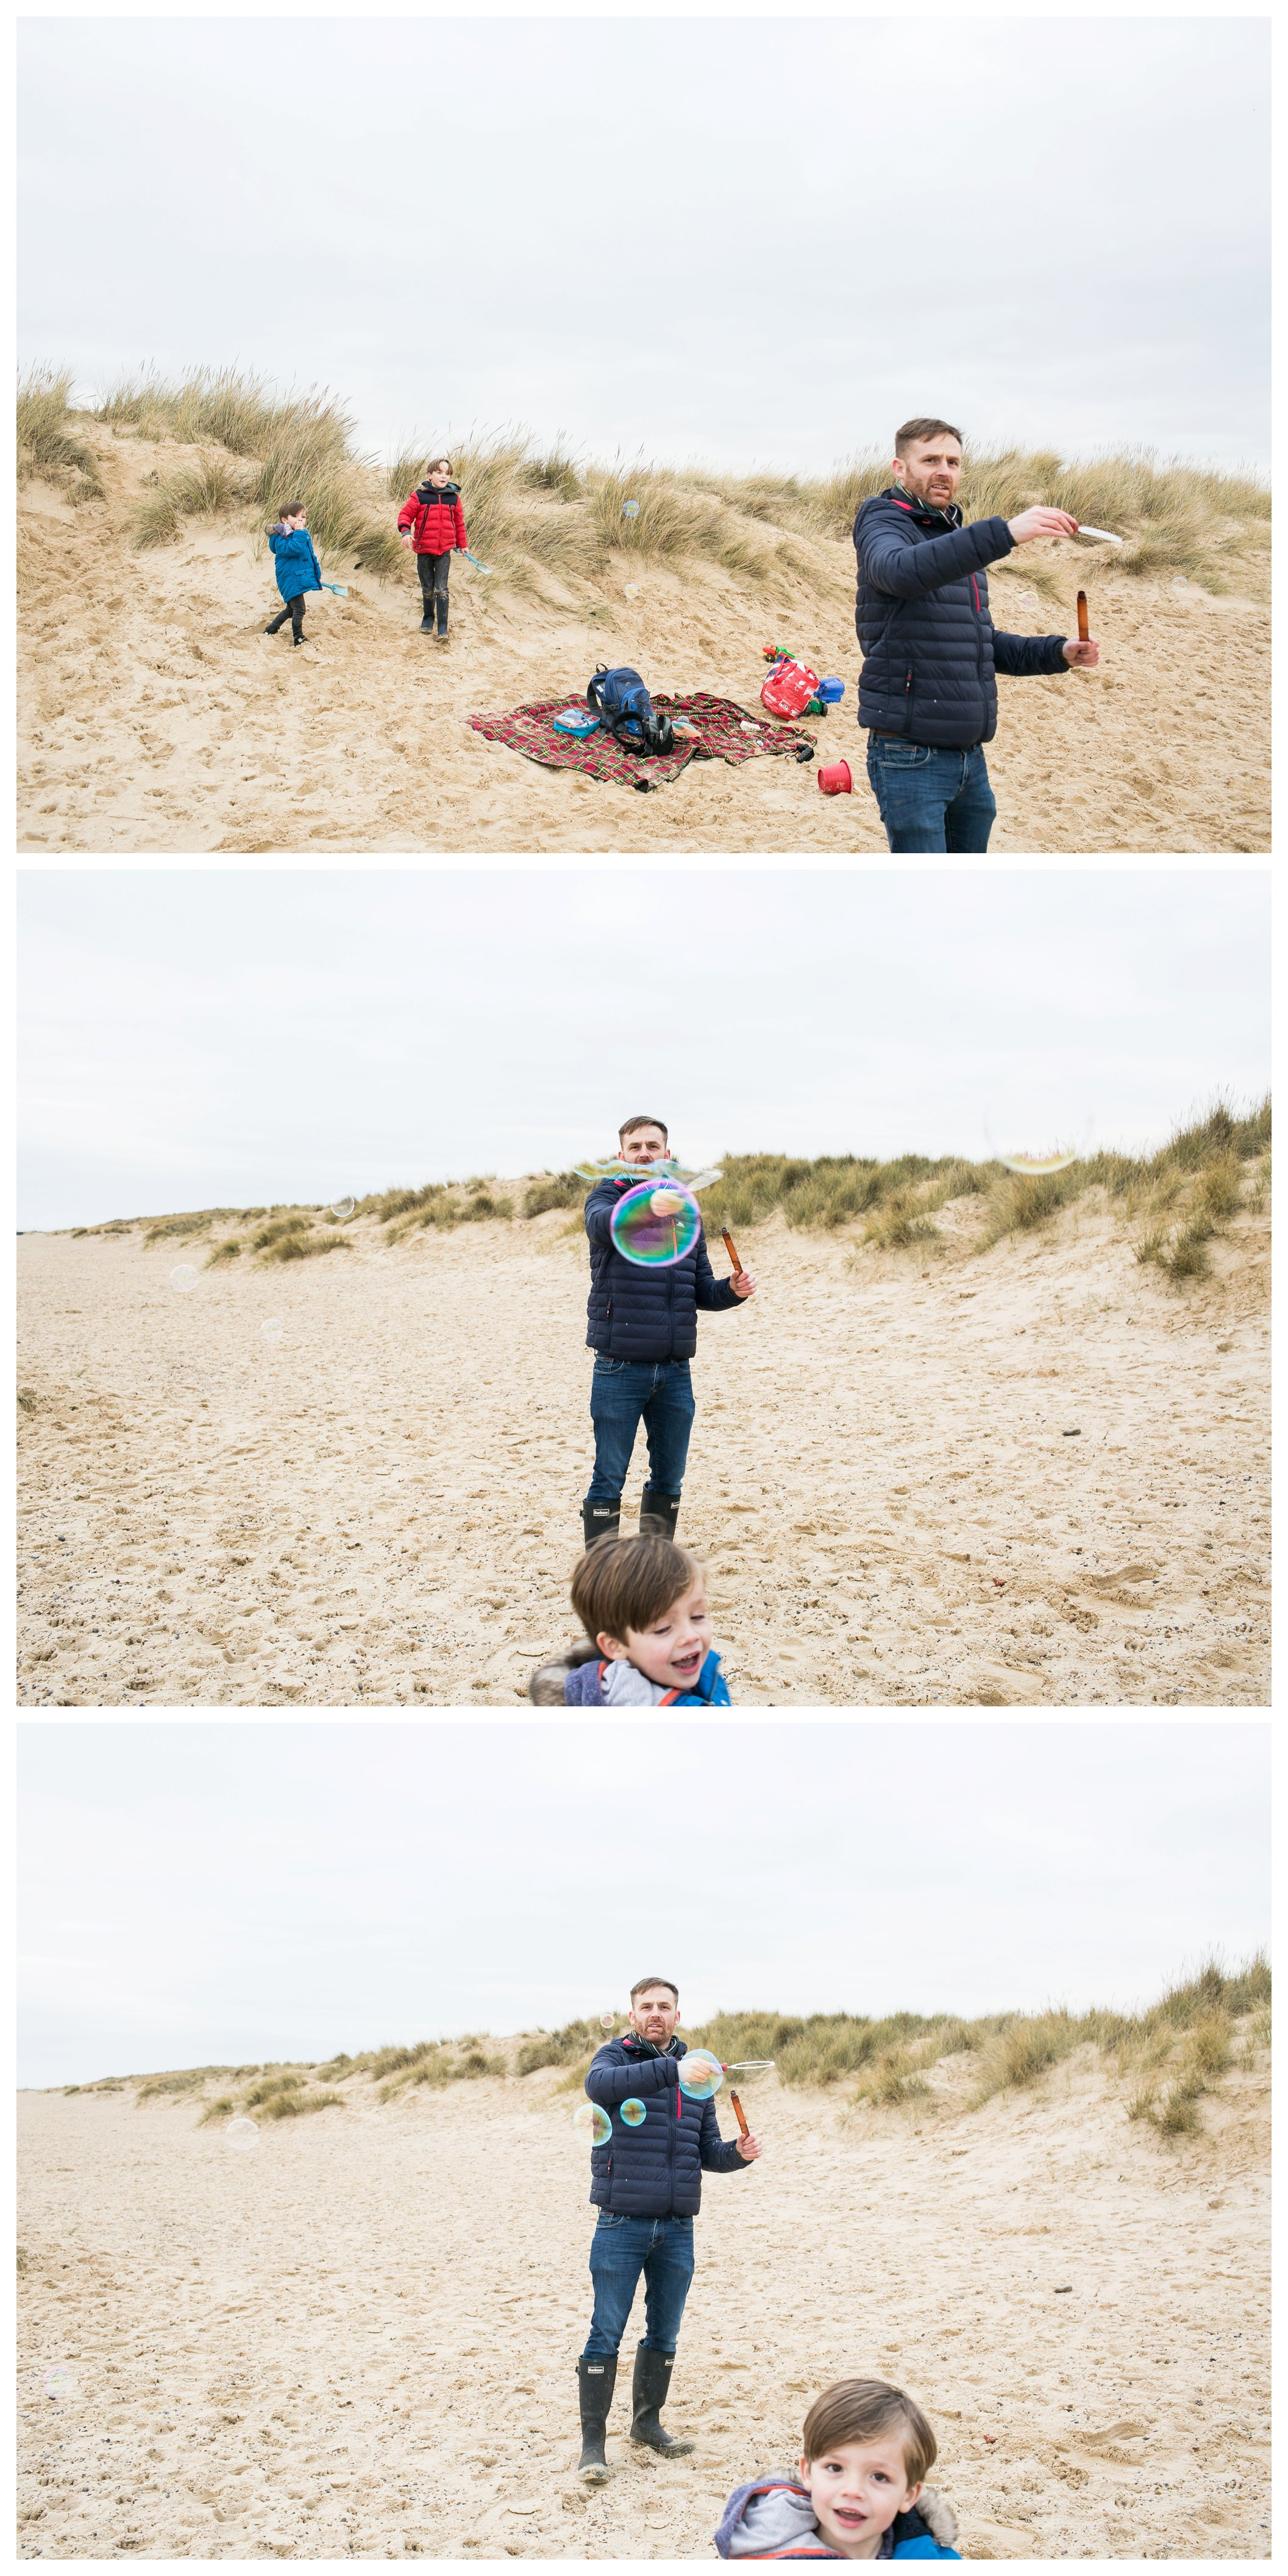 blowing bubbles on the beach in winter